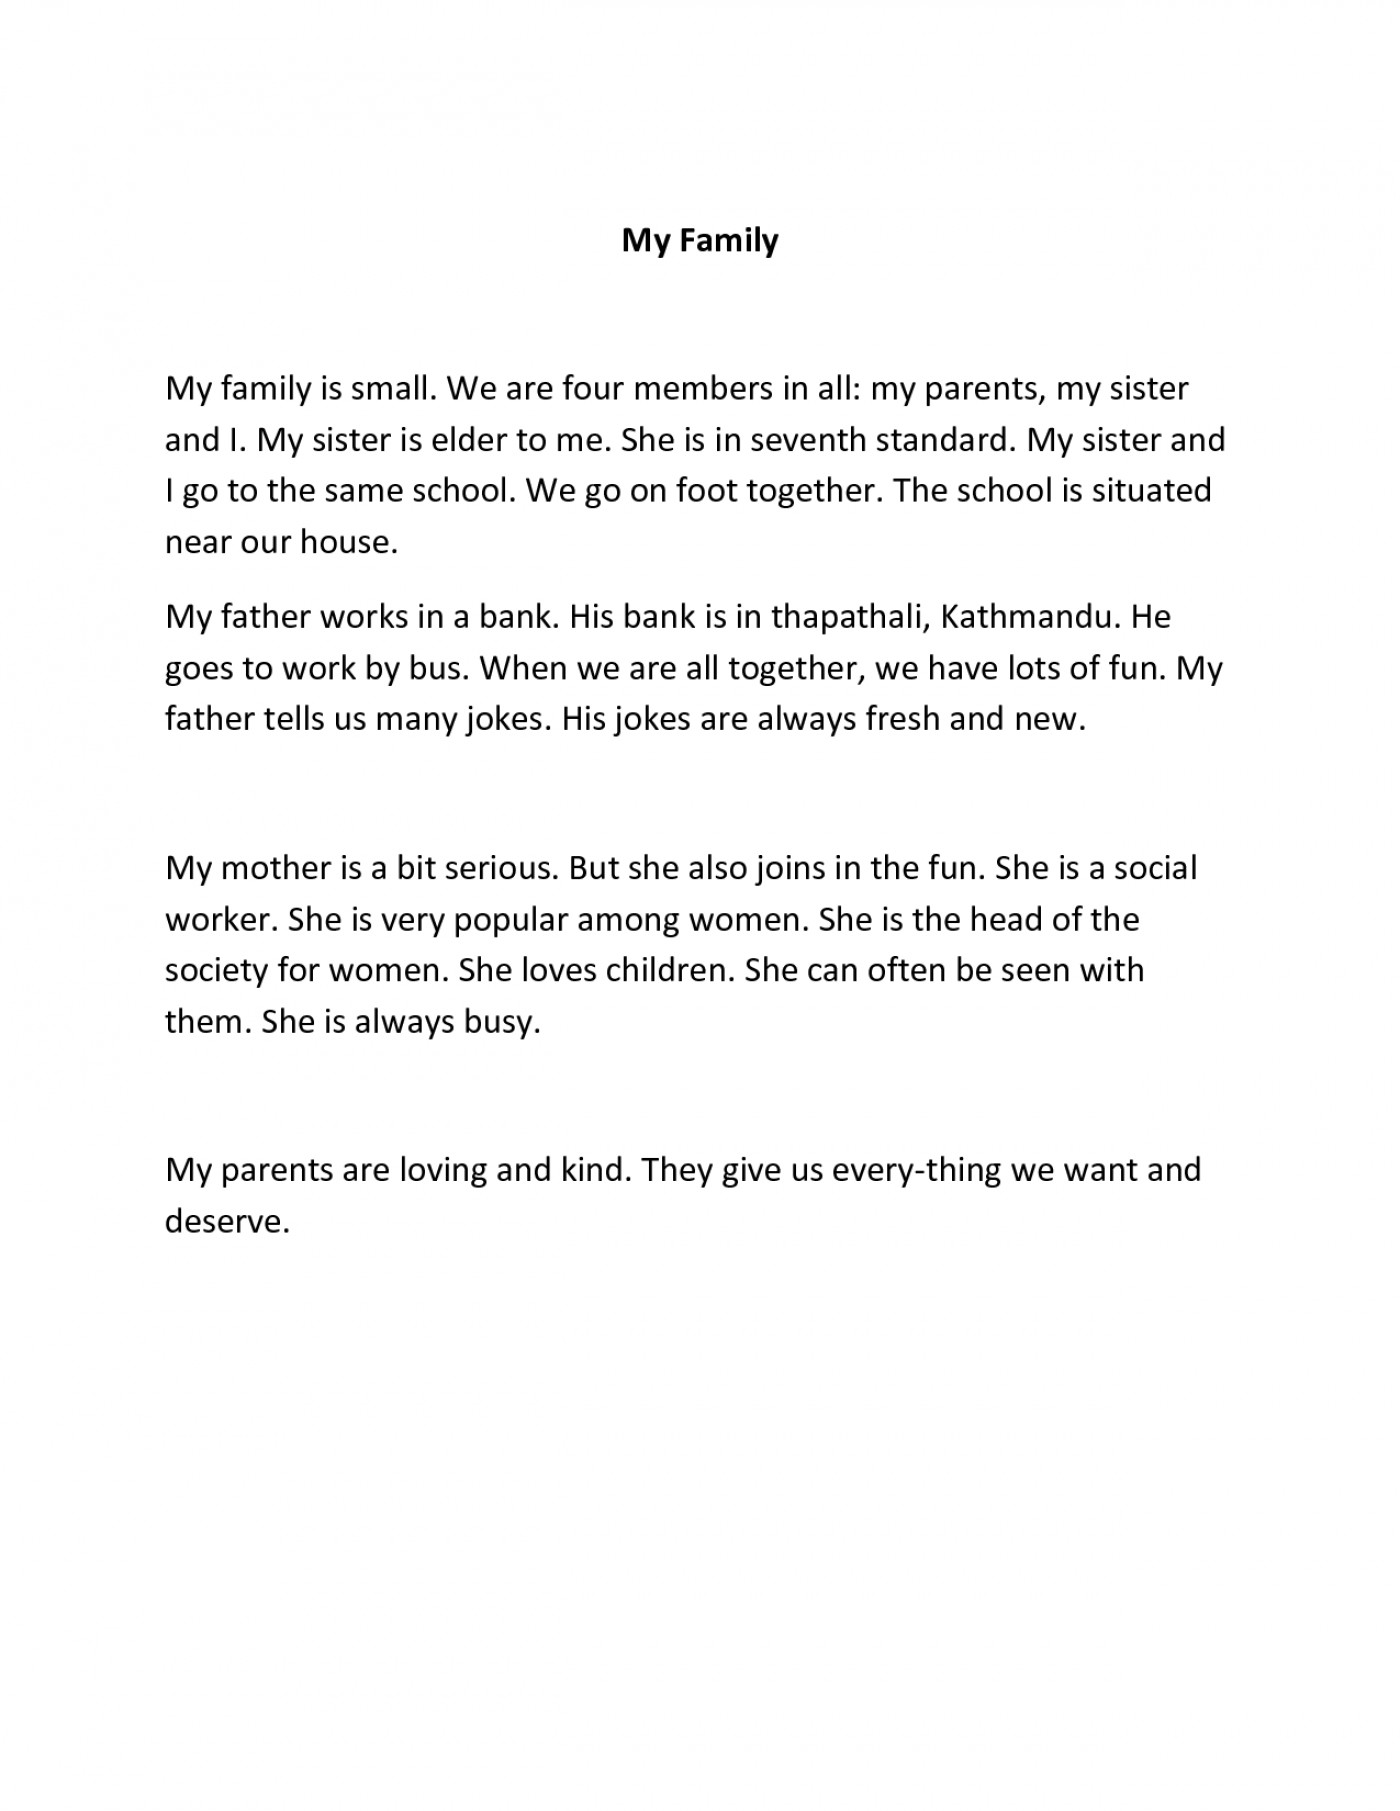 Essay writing my family